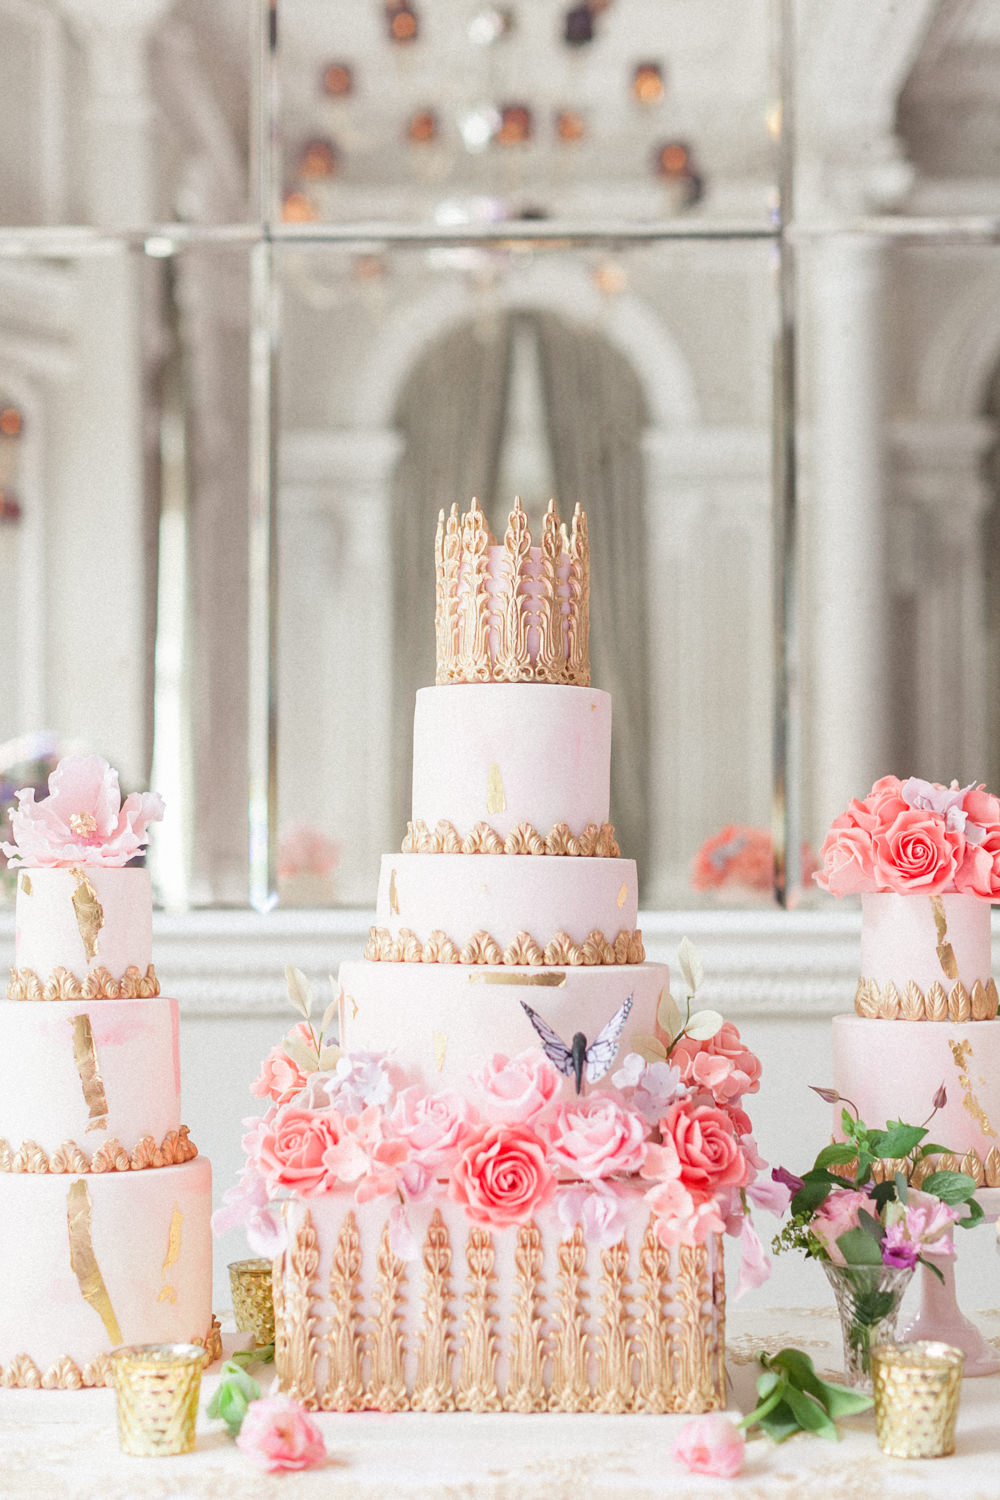 Regal and magical, I love the combination of blush pink and gold. Perfect for a summer wedding. Cake by Elizabeth's Cake Emporium. Image by Roberta Facchini